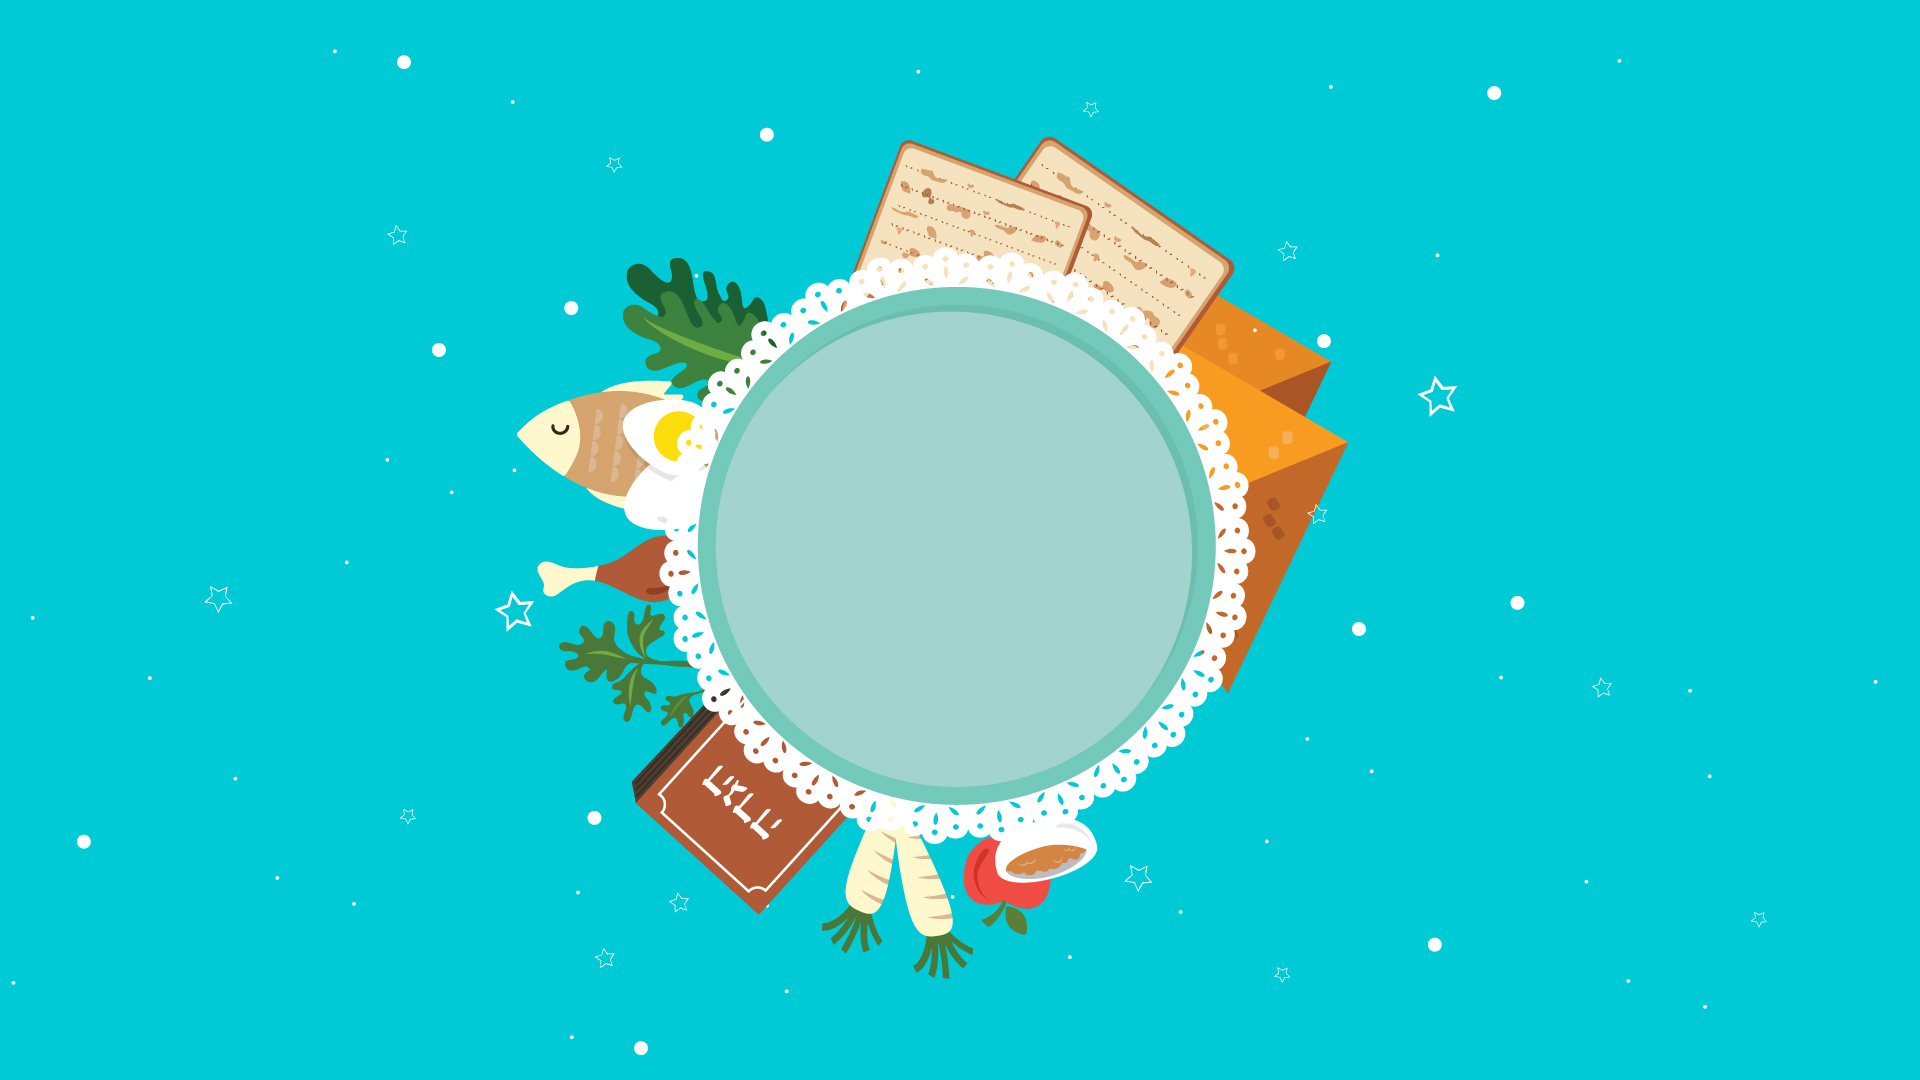 picture relating to Children's Passover Seder Printable called Pover Crafts Functions for Small children: How in direction of Generate the